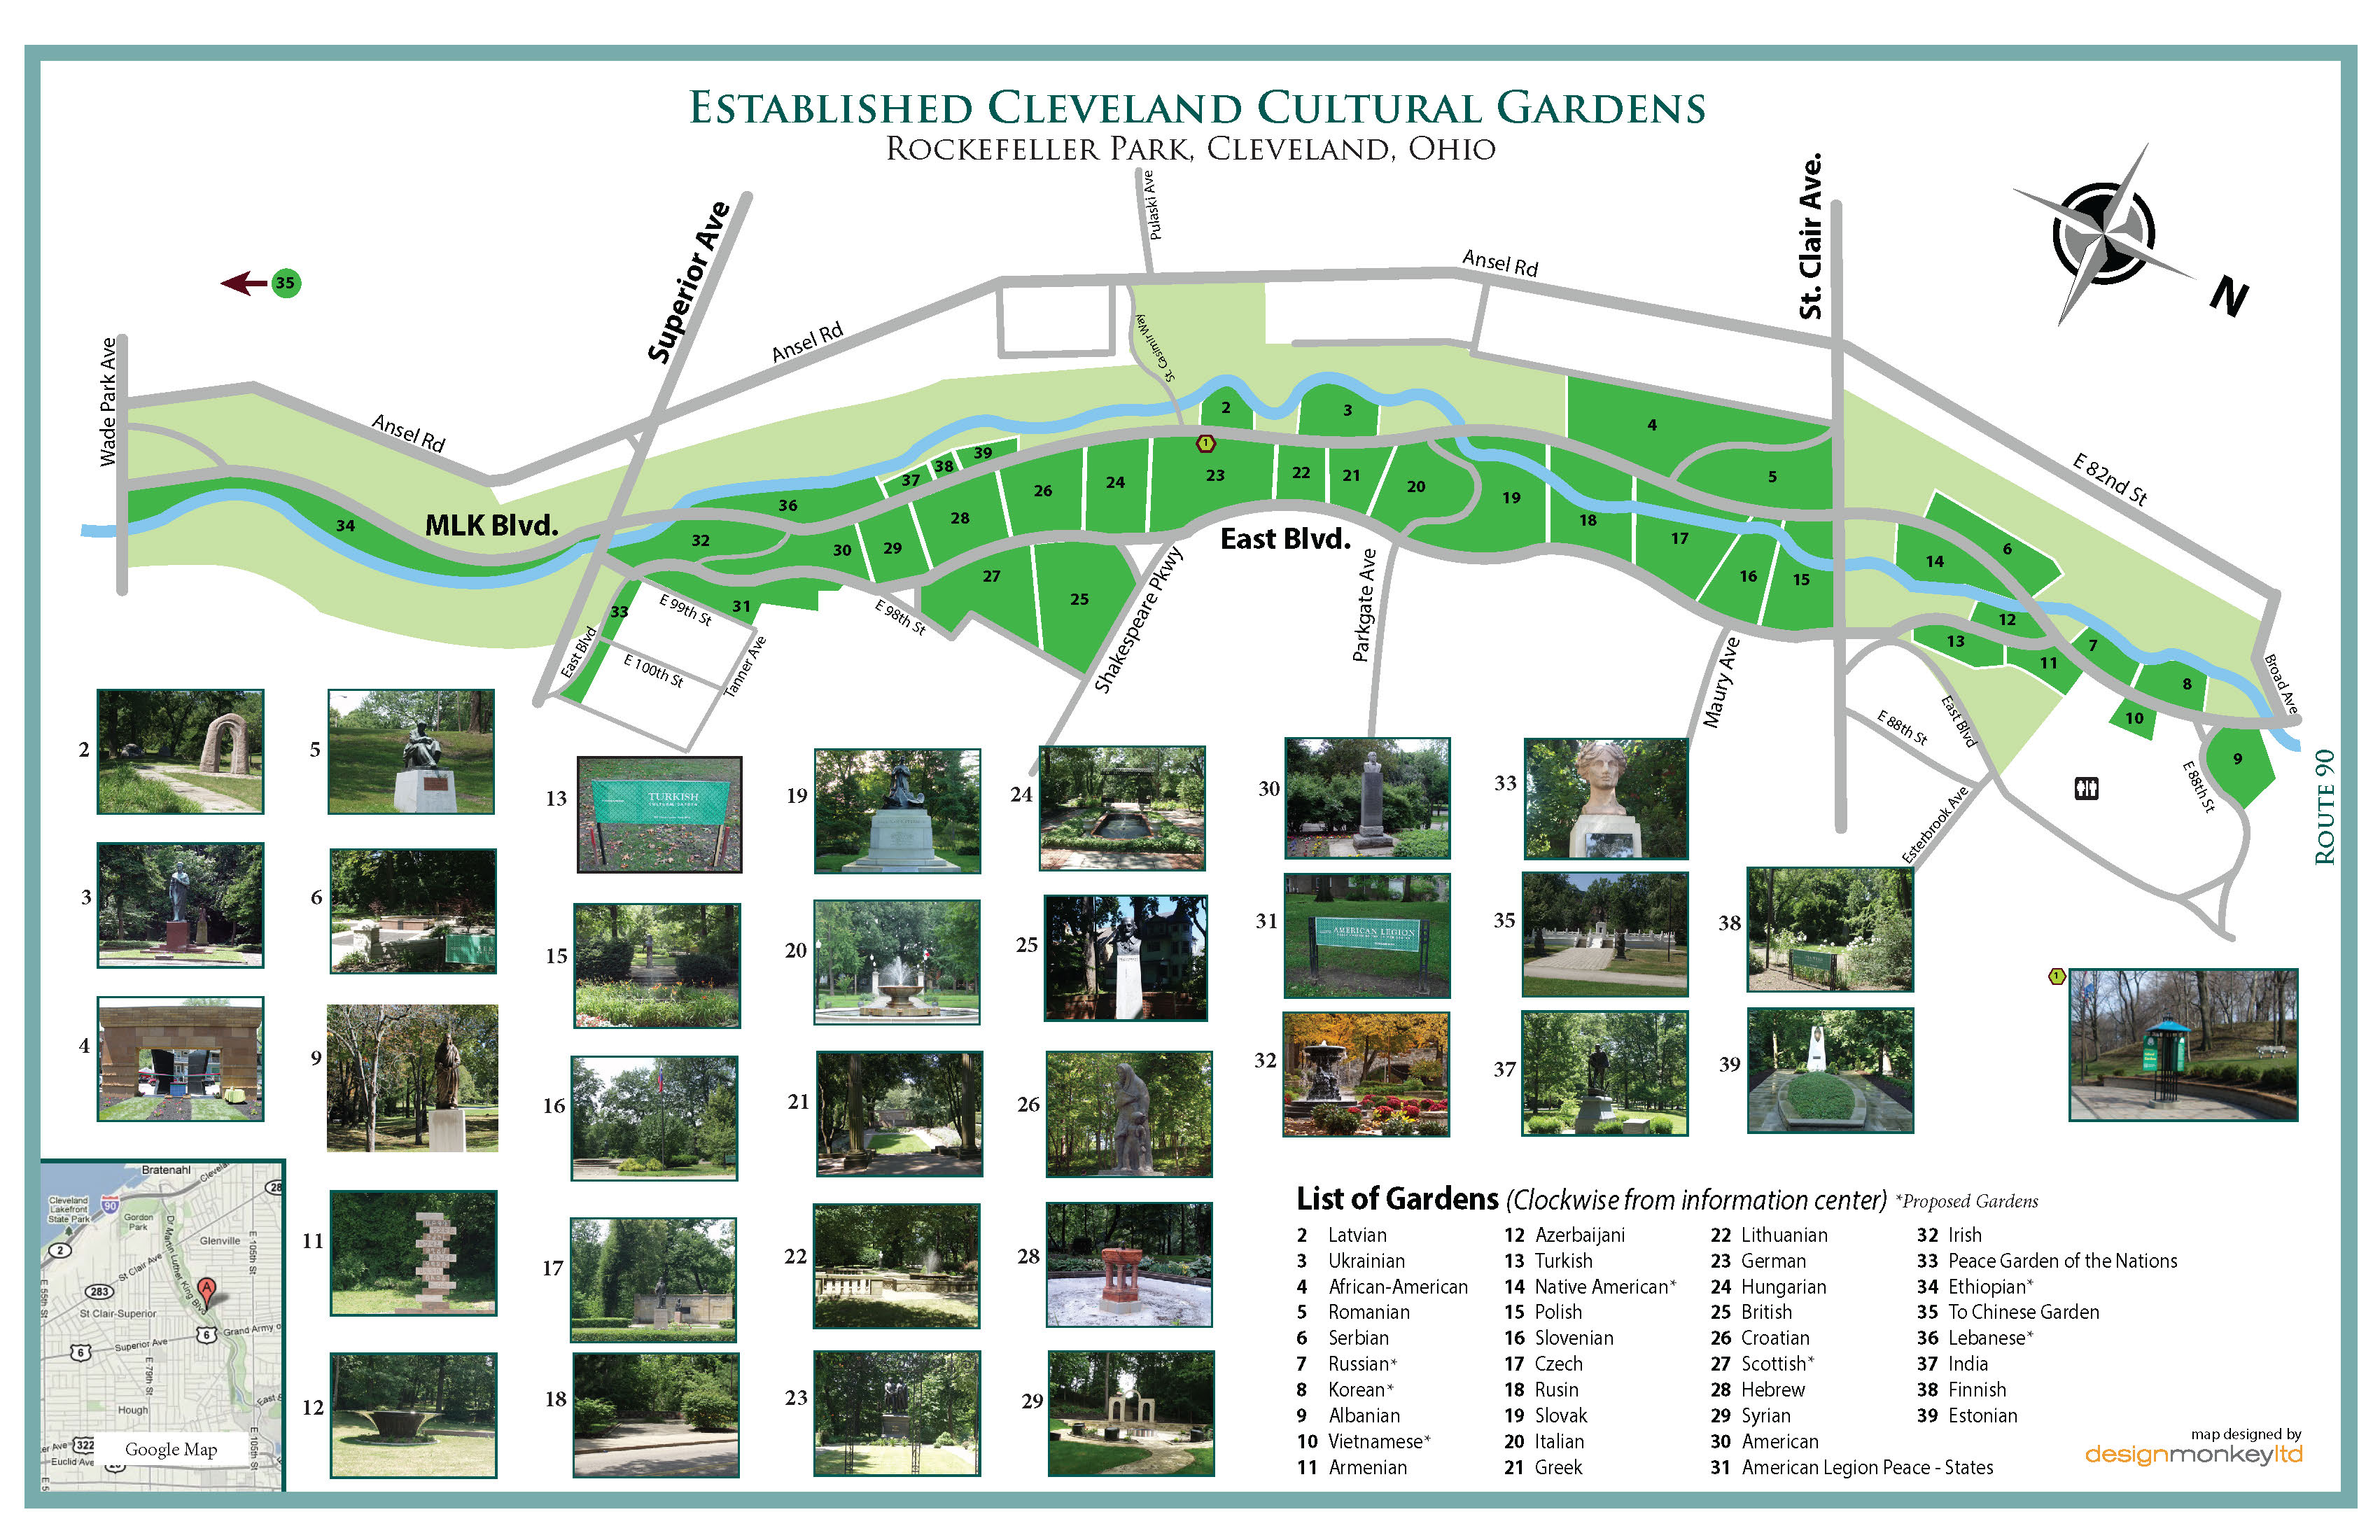 Map of the Cleveland Cultural Gardens